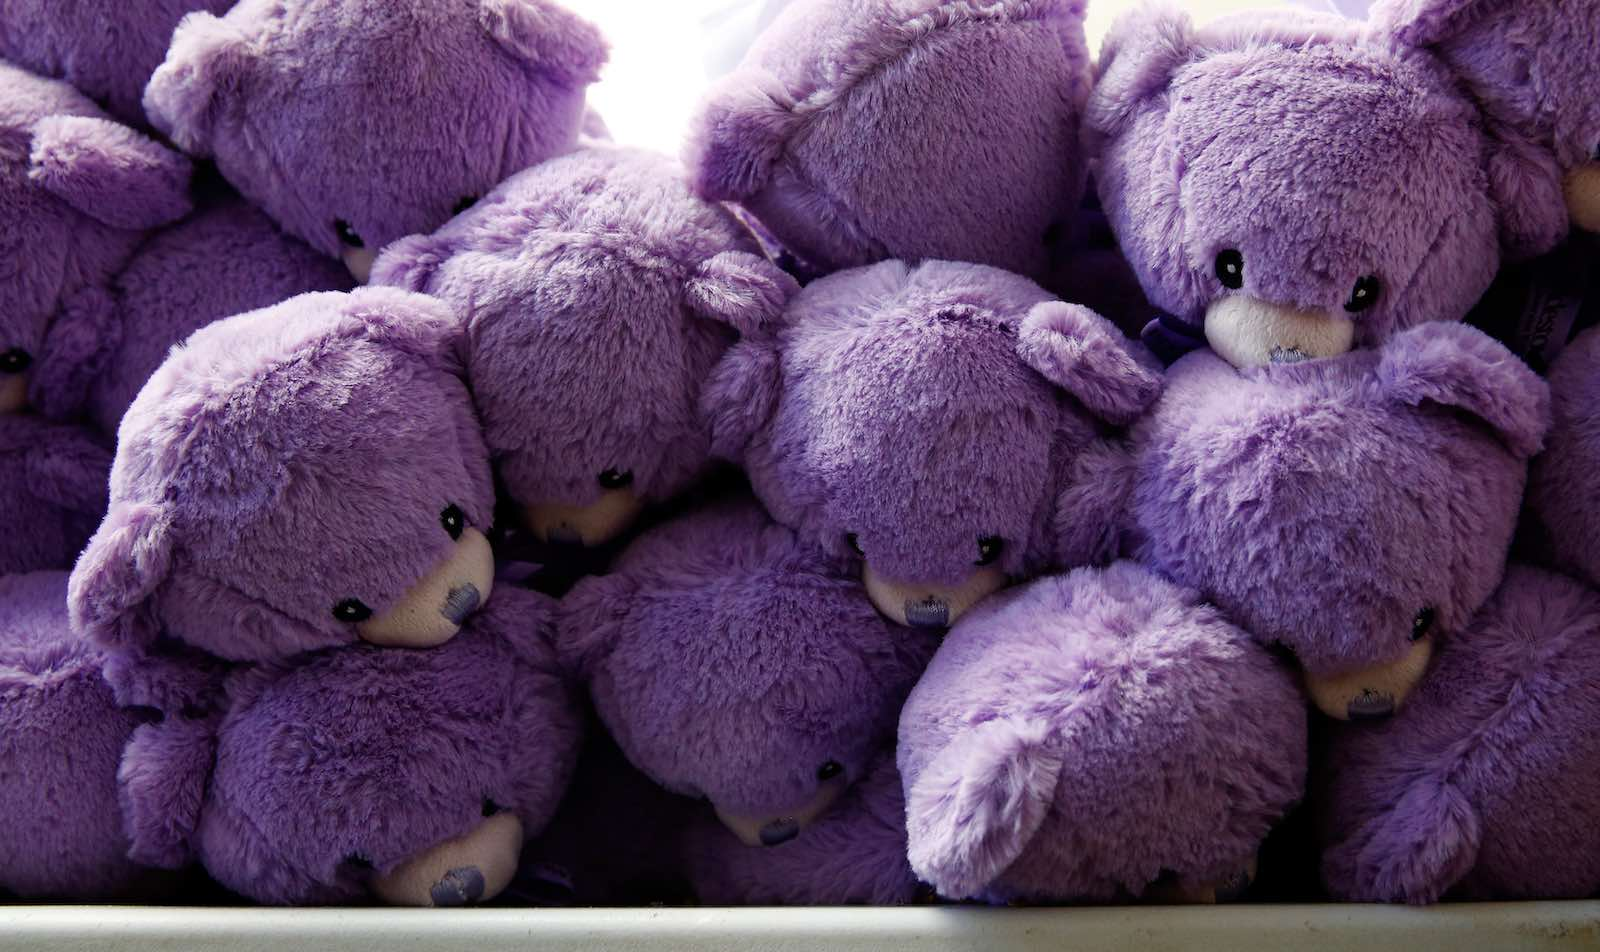 Lavender-stuffed teddy bears from Tasmania in Australia found a huge market in China (Photo: Brendon Thorne via Getty)